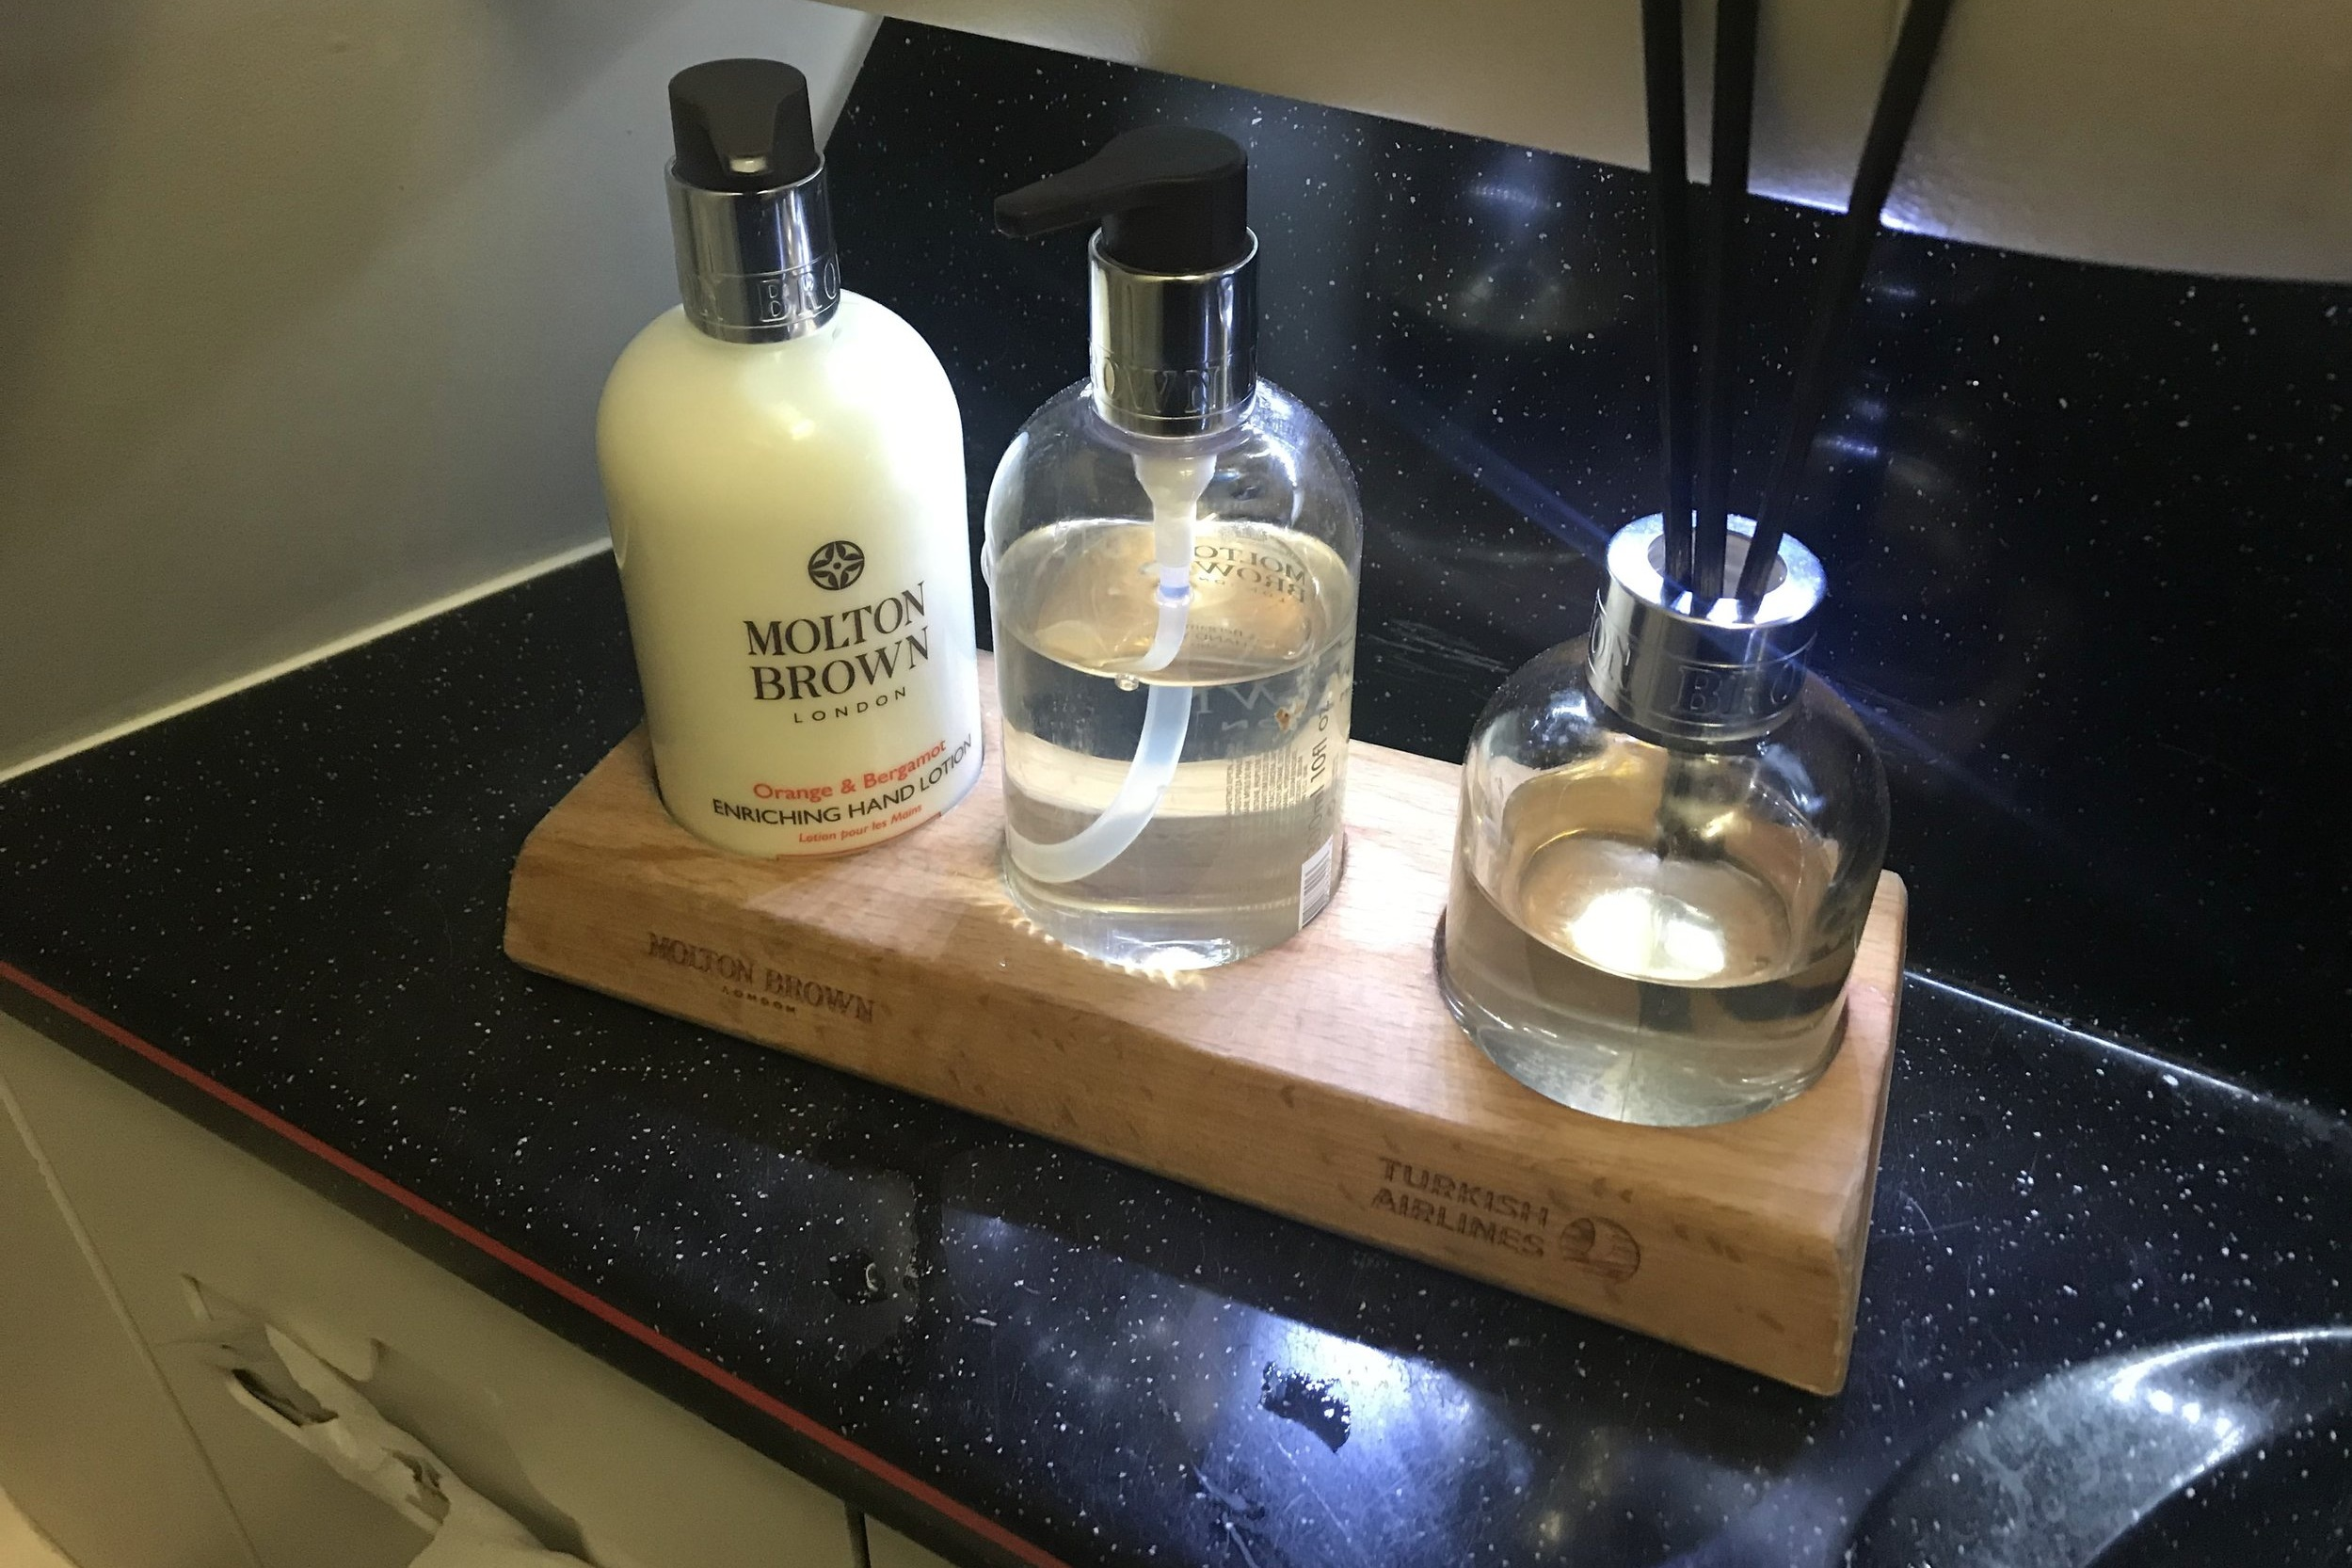 Turkish Airlines A330 business class – Restroom amenities